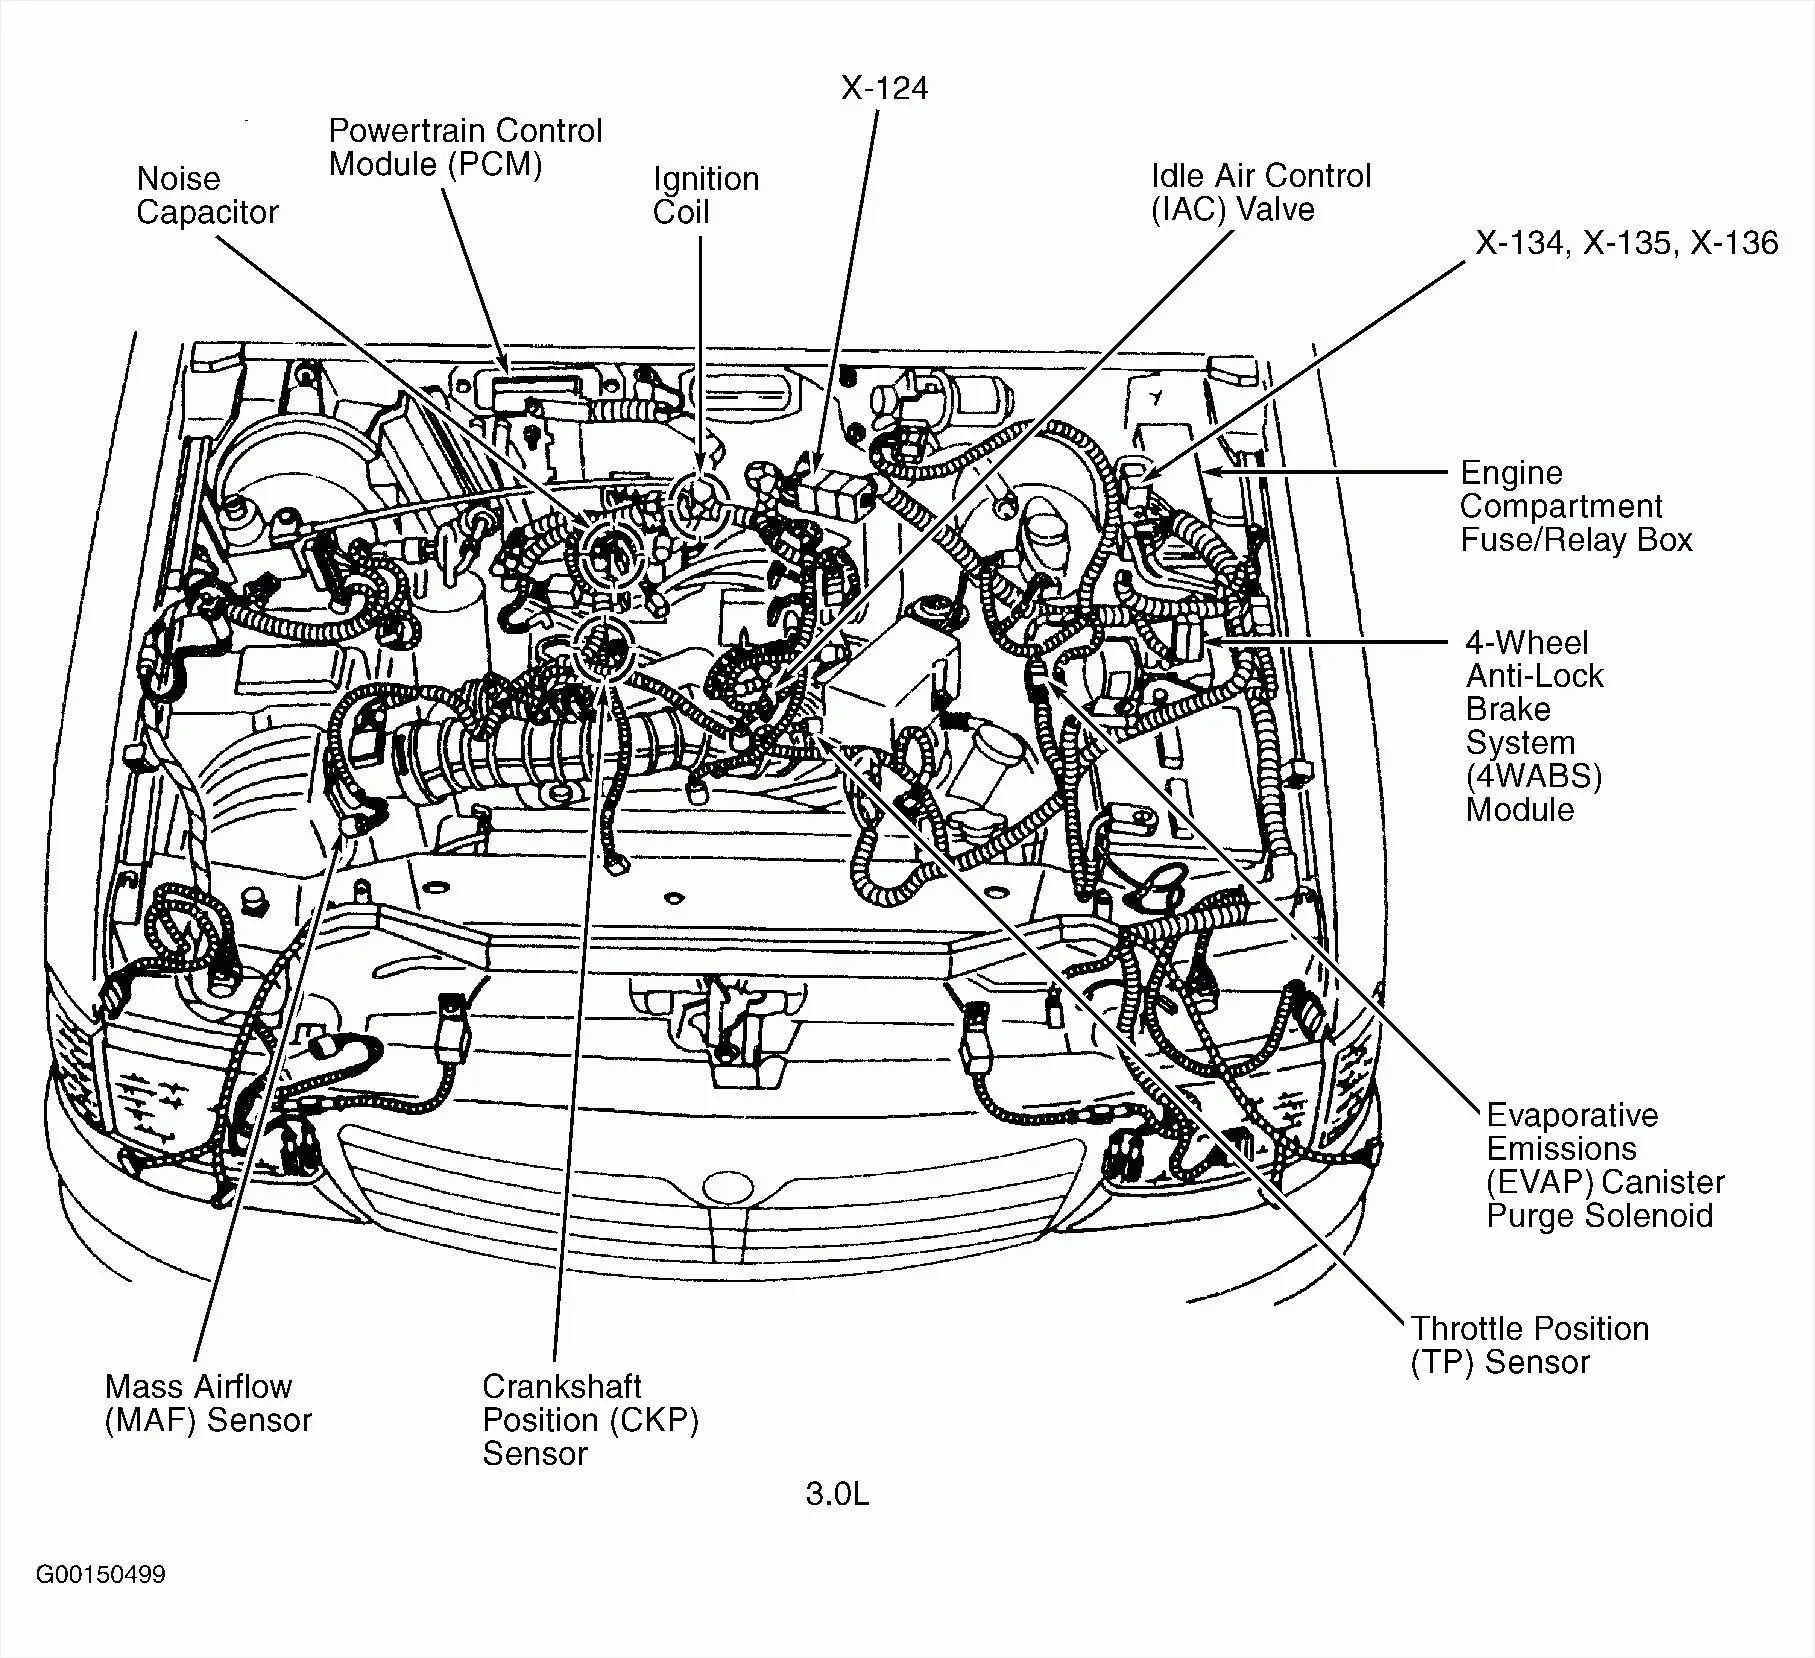 hight resolution of 2001 vw tdi wiring diagram wiring diagrams konsult 2002 golf tdi wiring diagram 2001 tdi engine